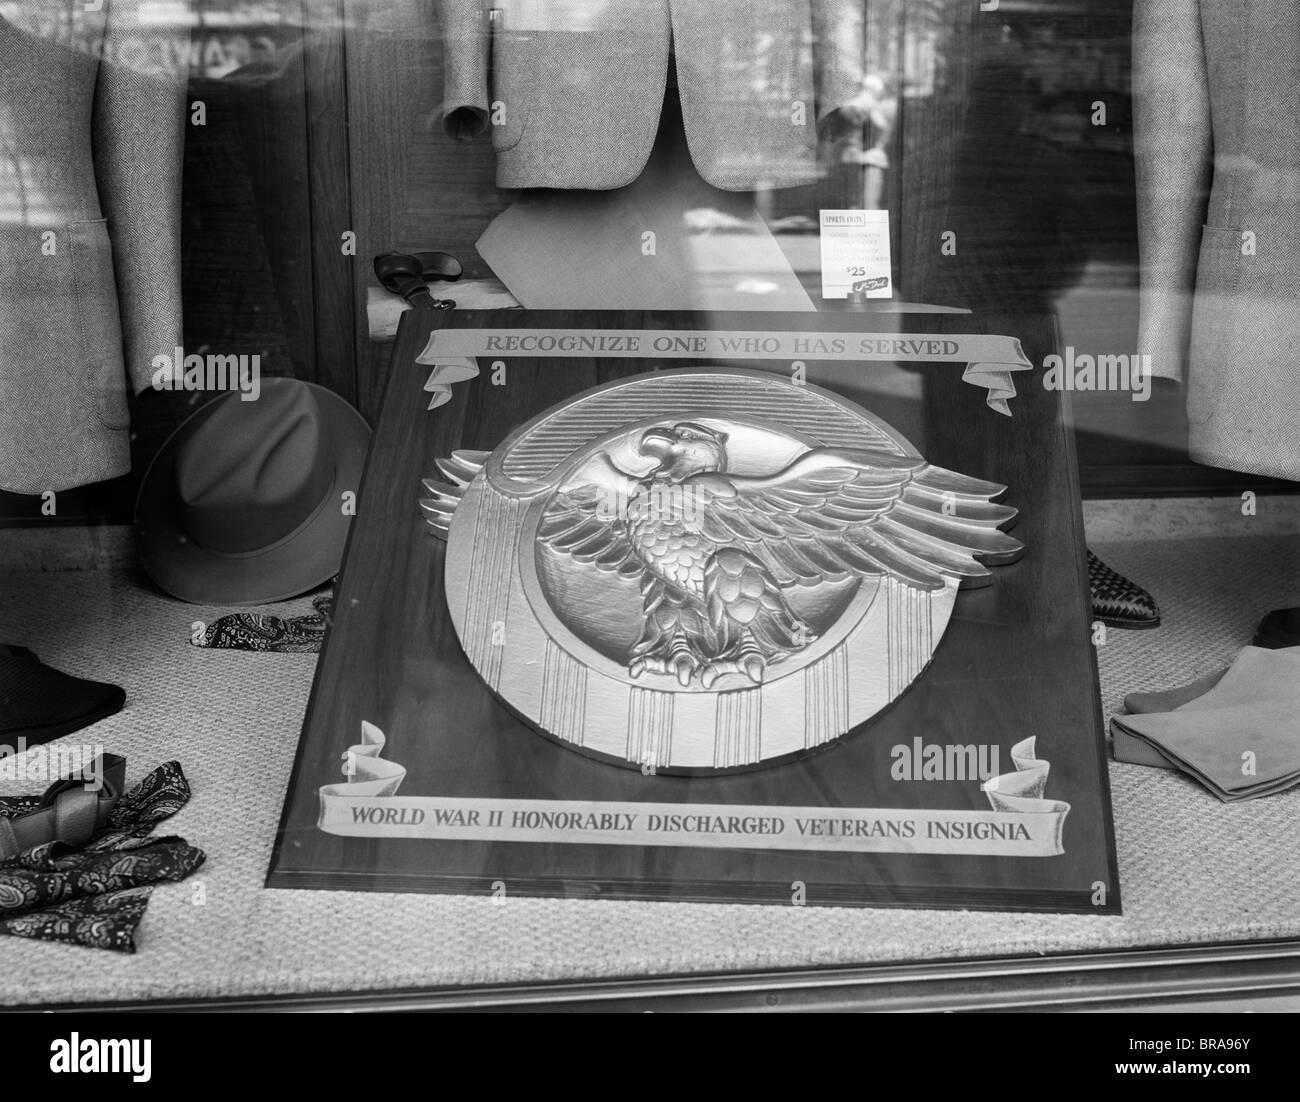 1940s 1945 PLAQUE OF THE WAR VETERANS HONORABLE DISCHARGE BUTTON INSIGNIA IN STORE WINDOW - Stock Image